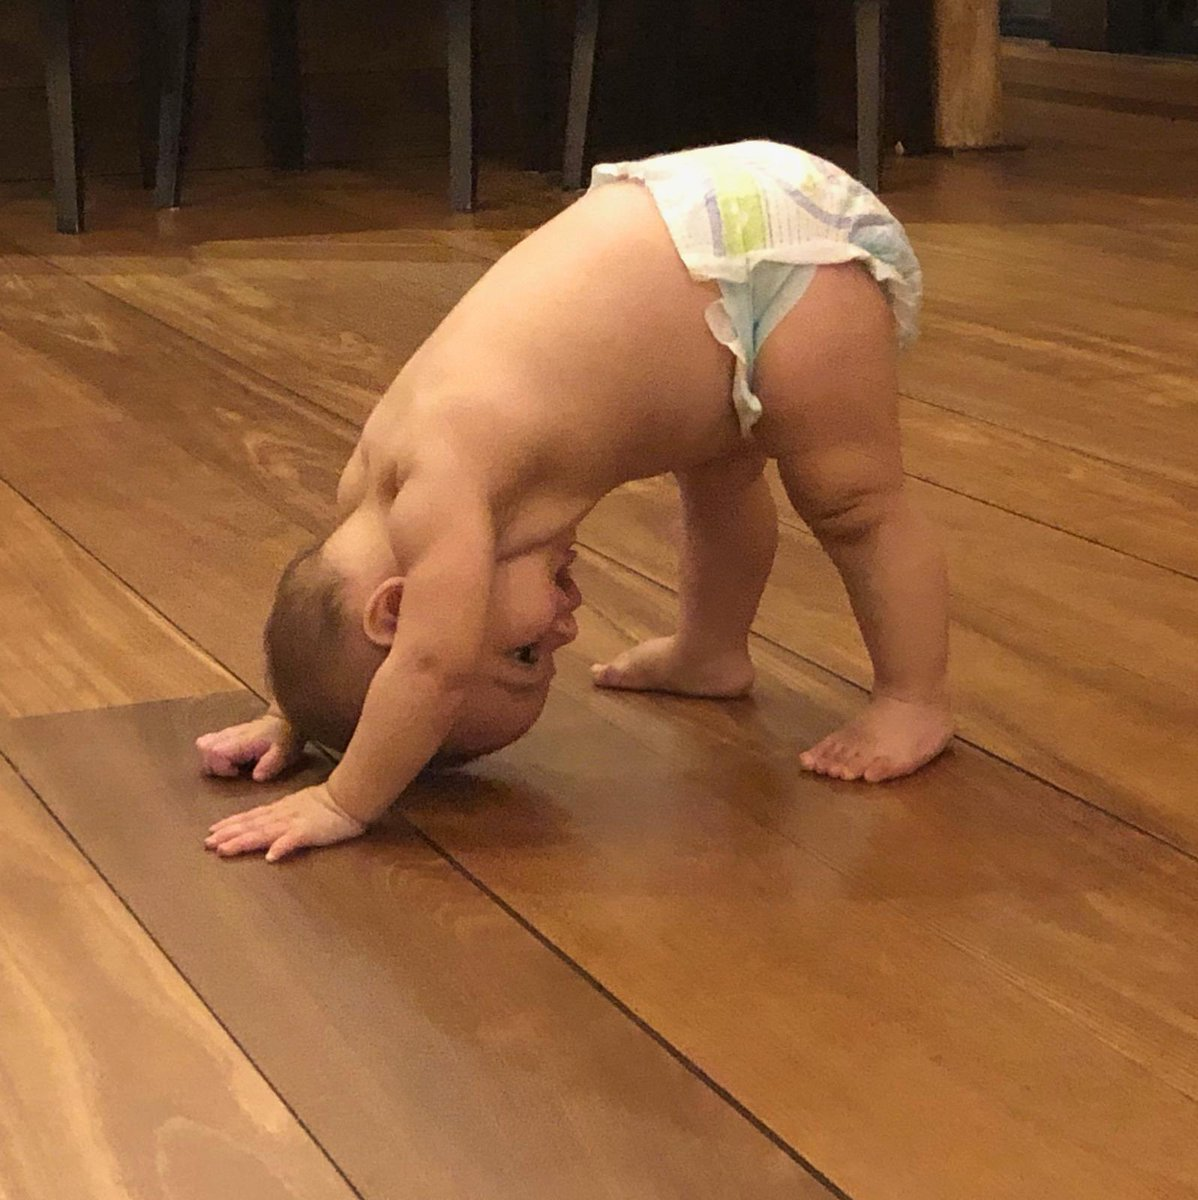 Yoga baby!! Where did he learn this? ???????????? https://t.co/QE7nIASet4